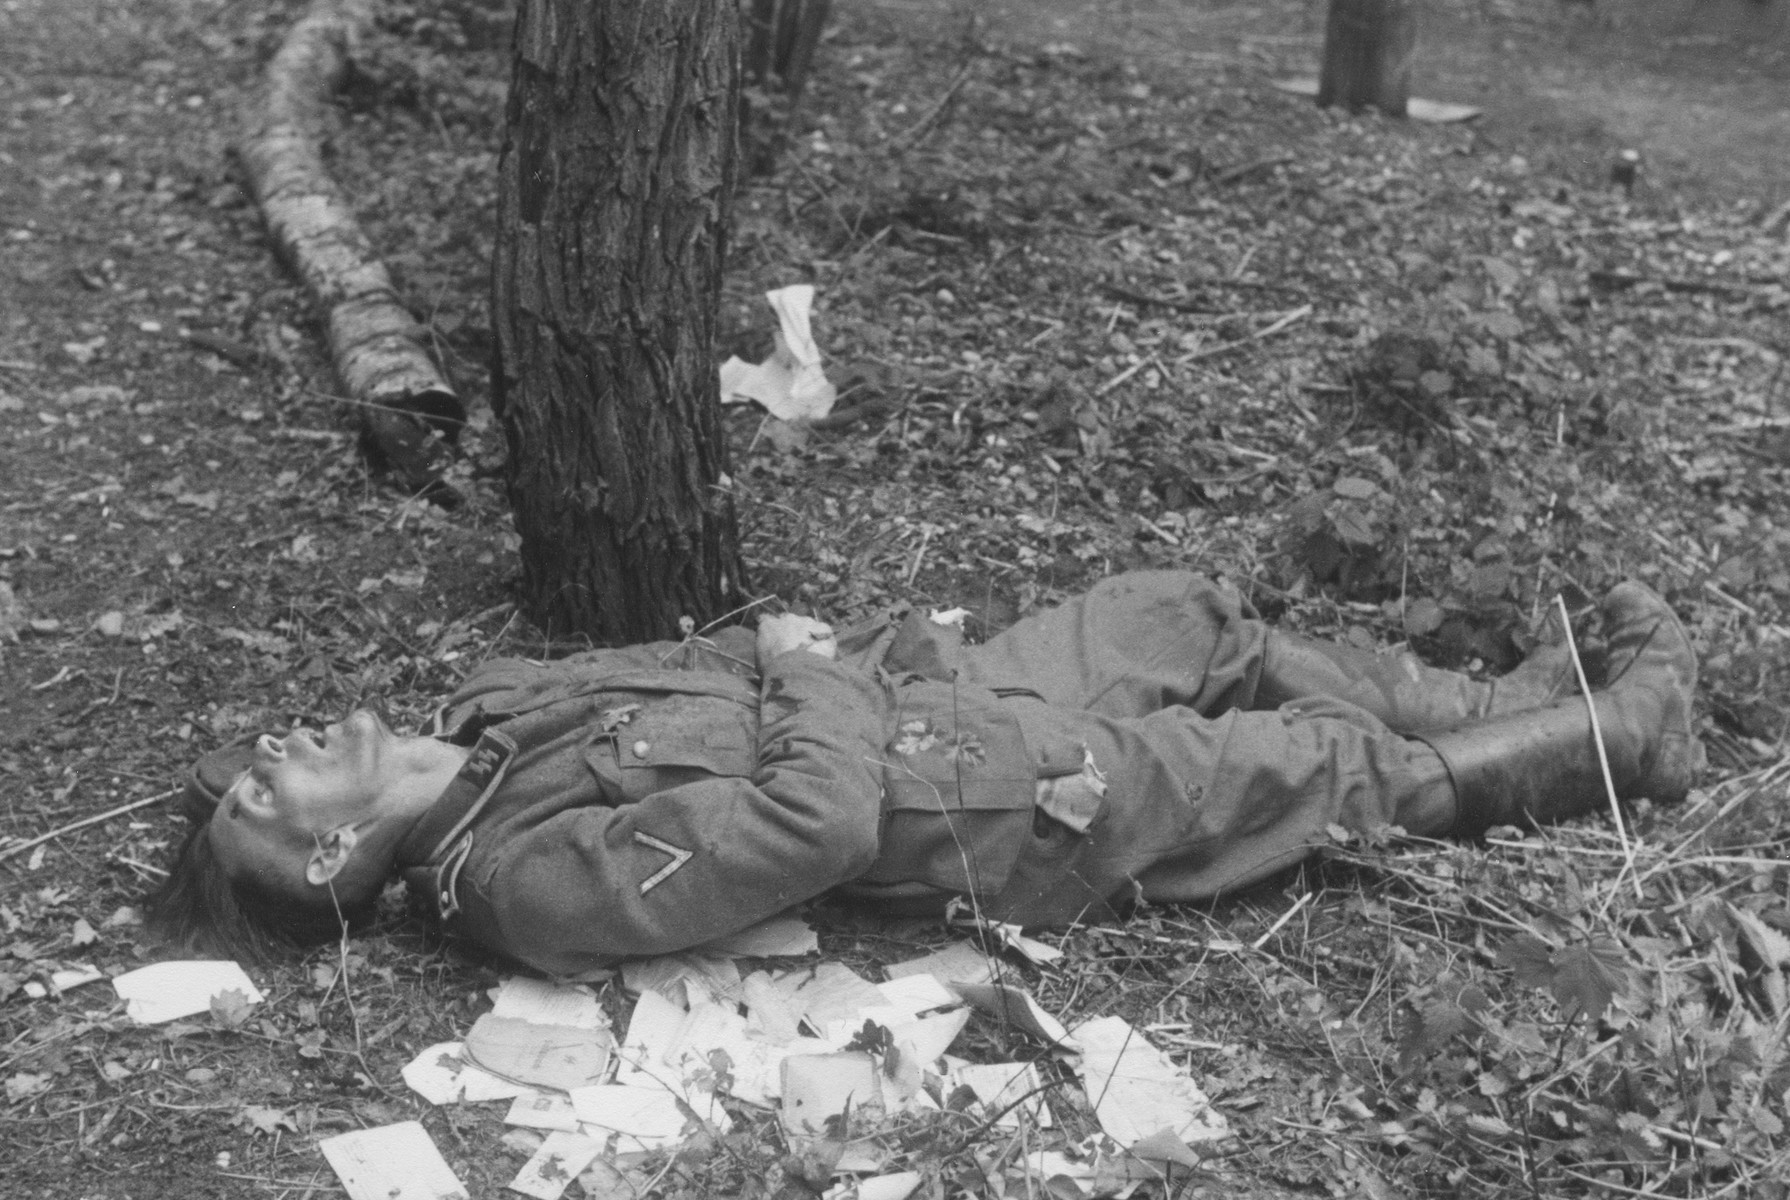 A slain camp guard lies in the grass surrounded by what are probably his personal papers and documents.